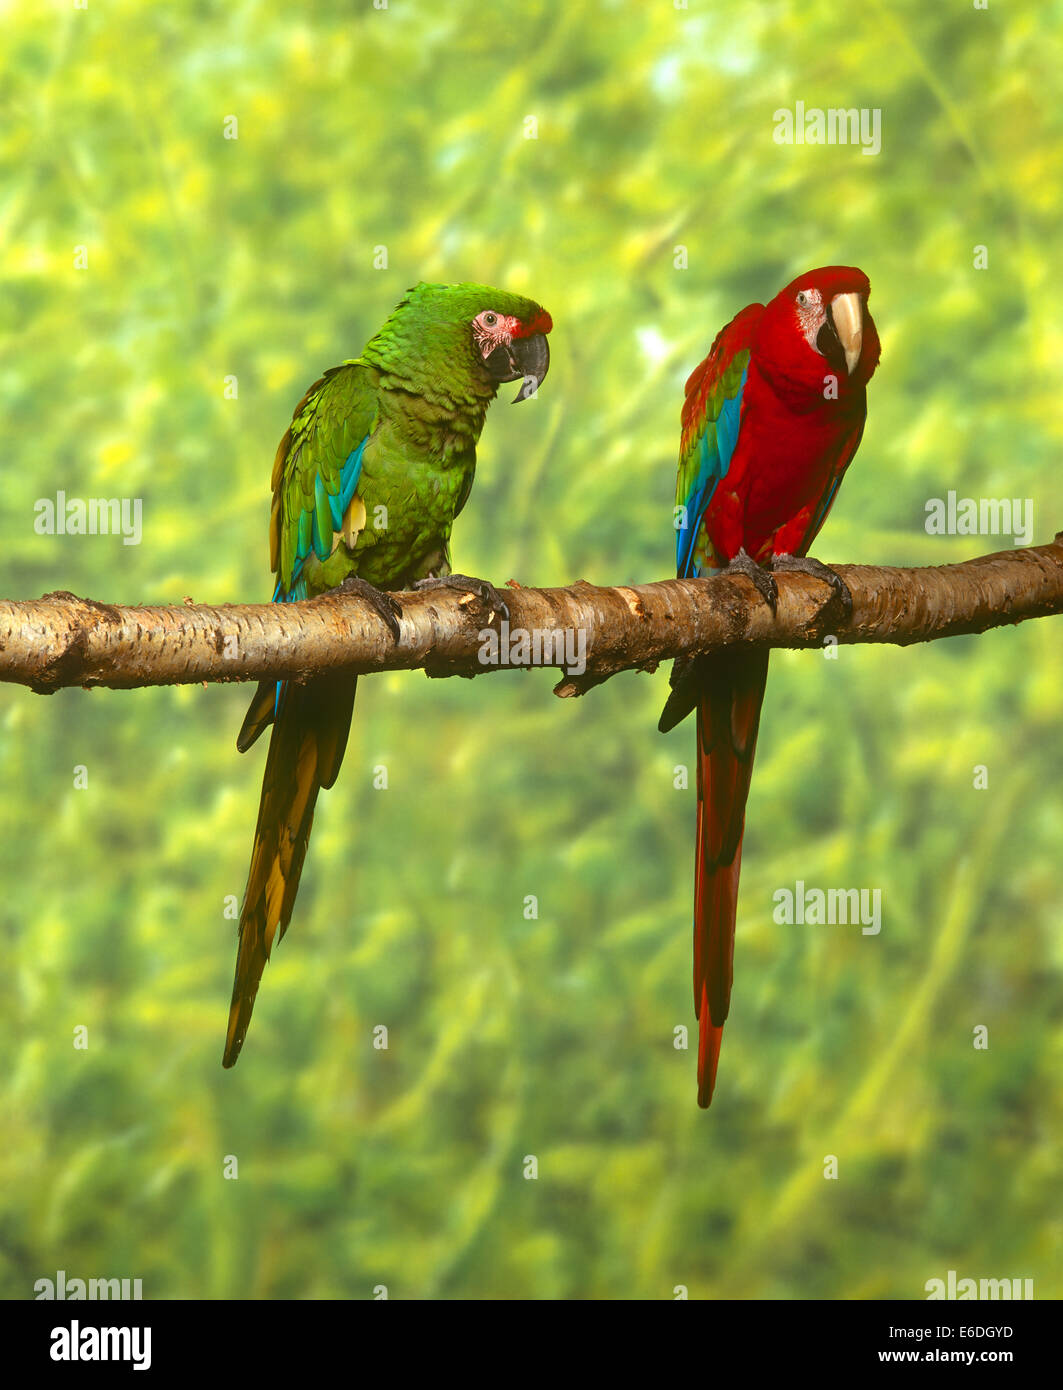 two macaws sitting on a branch - Stock Image